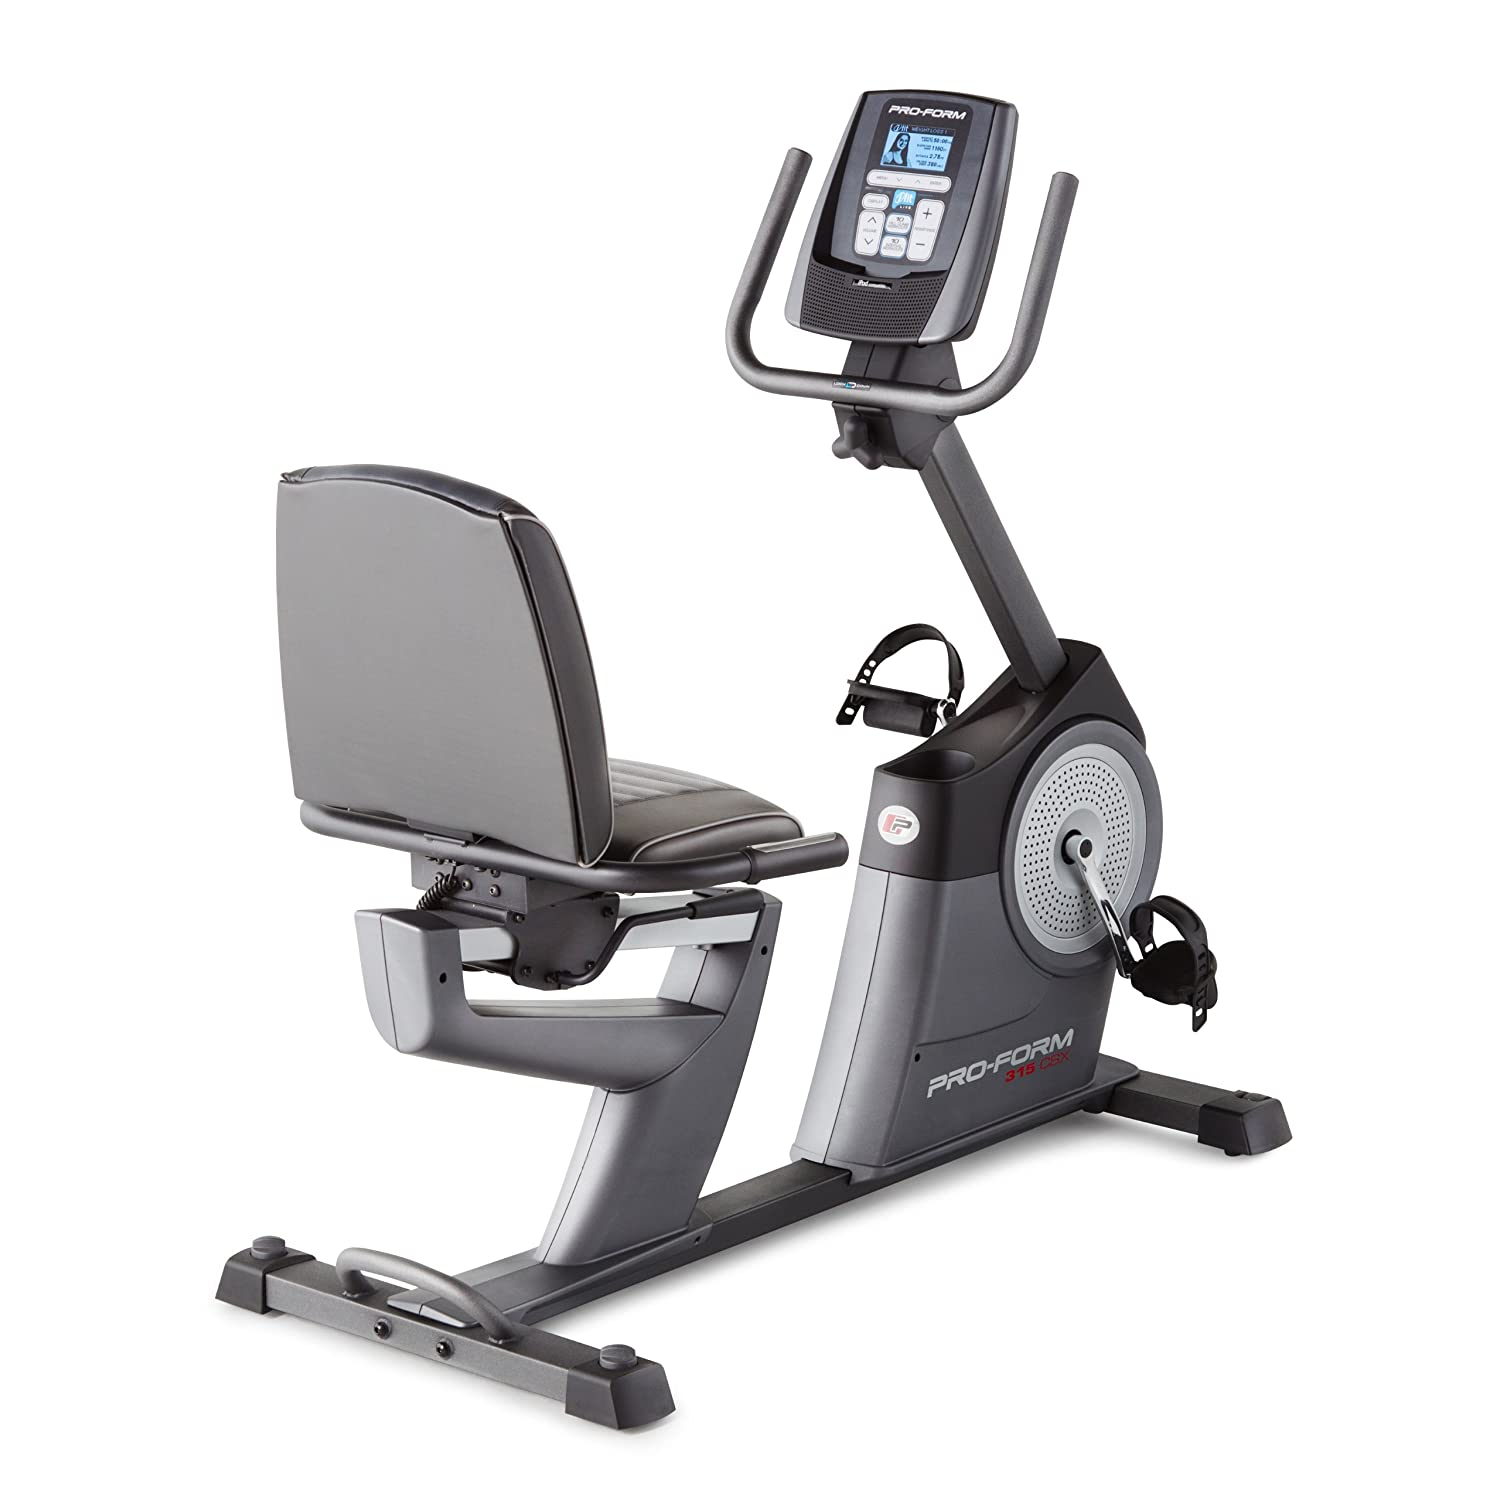 Proform 315 CSX Recumbent Bike for sale